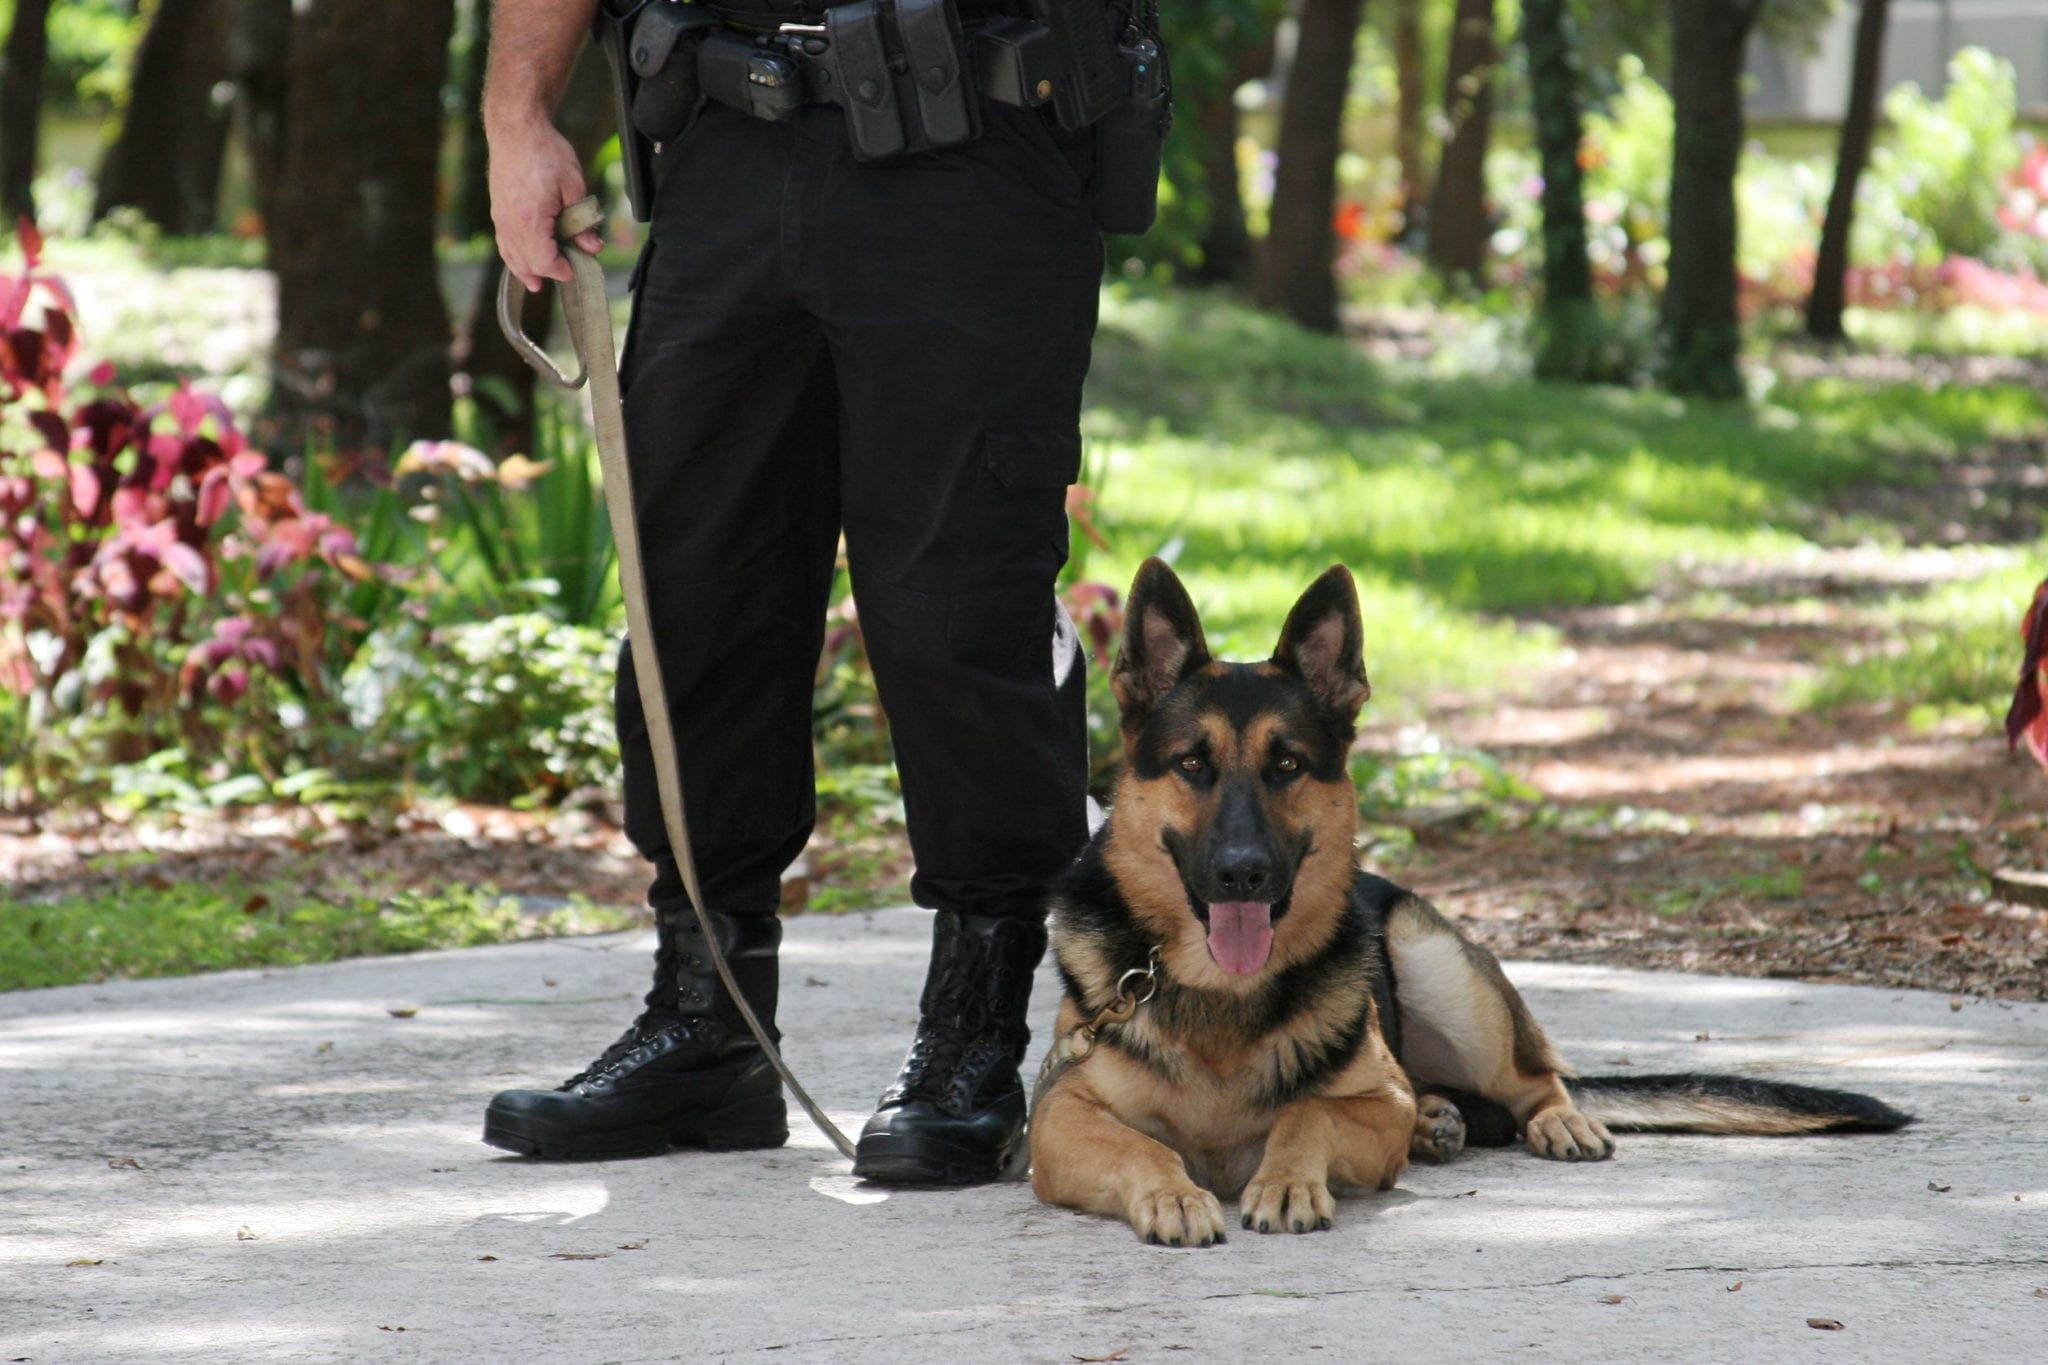 Lawsuit Against Use of Police Attack Dog in Routine Arrest Gets Court Approval to Proceed